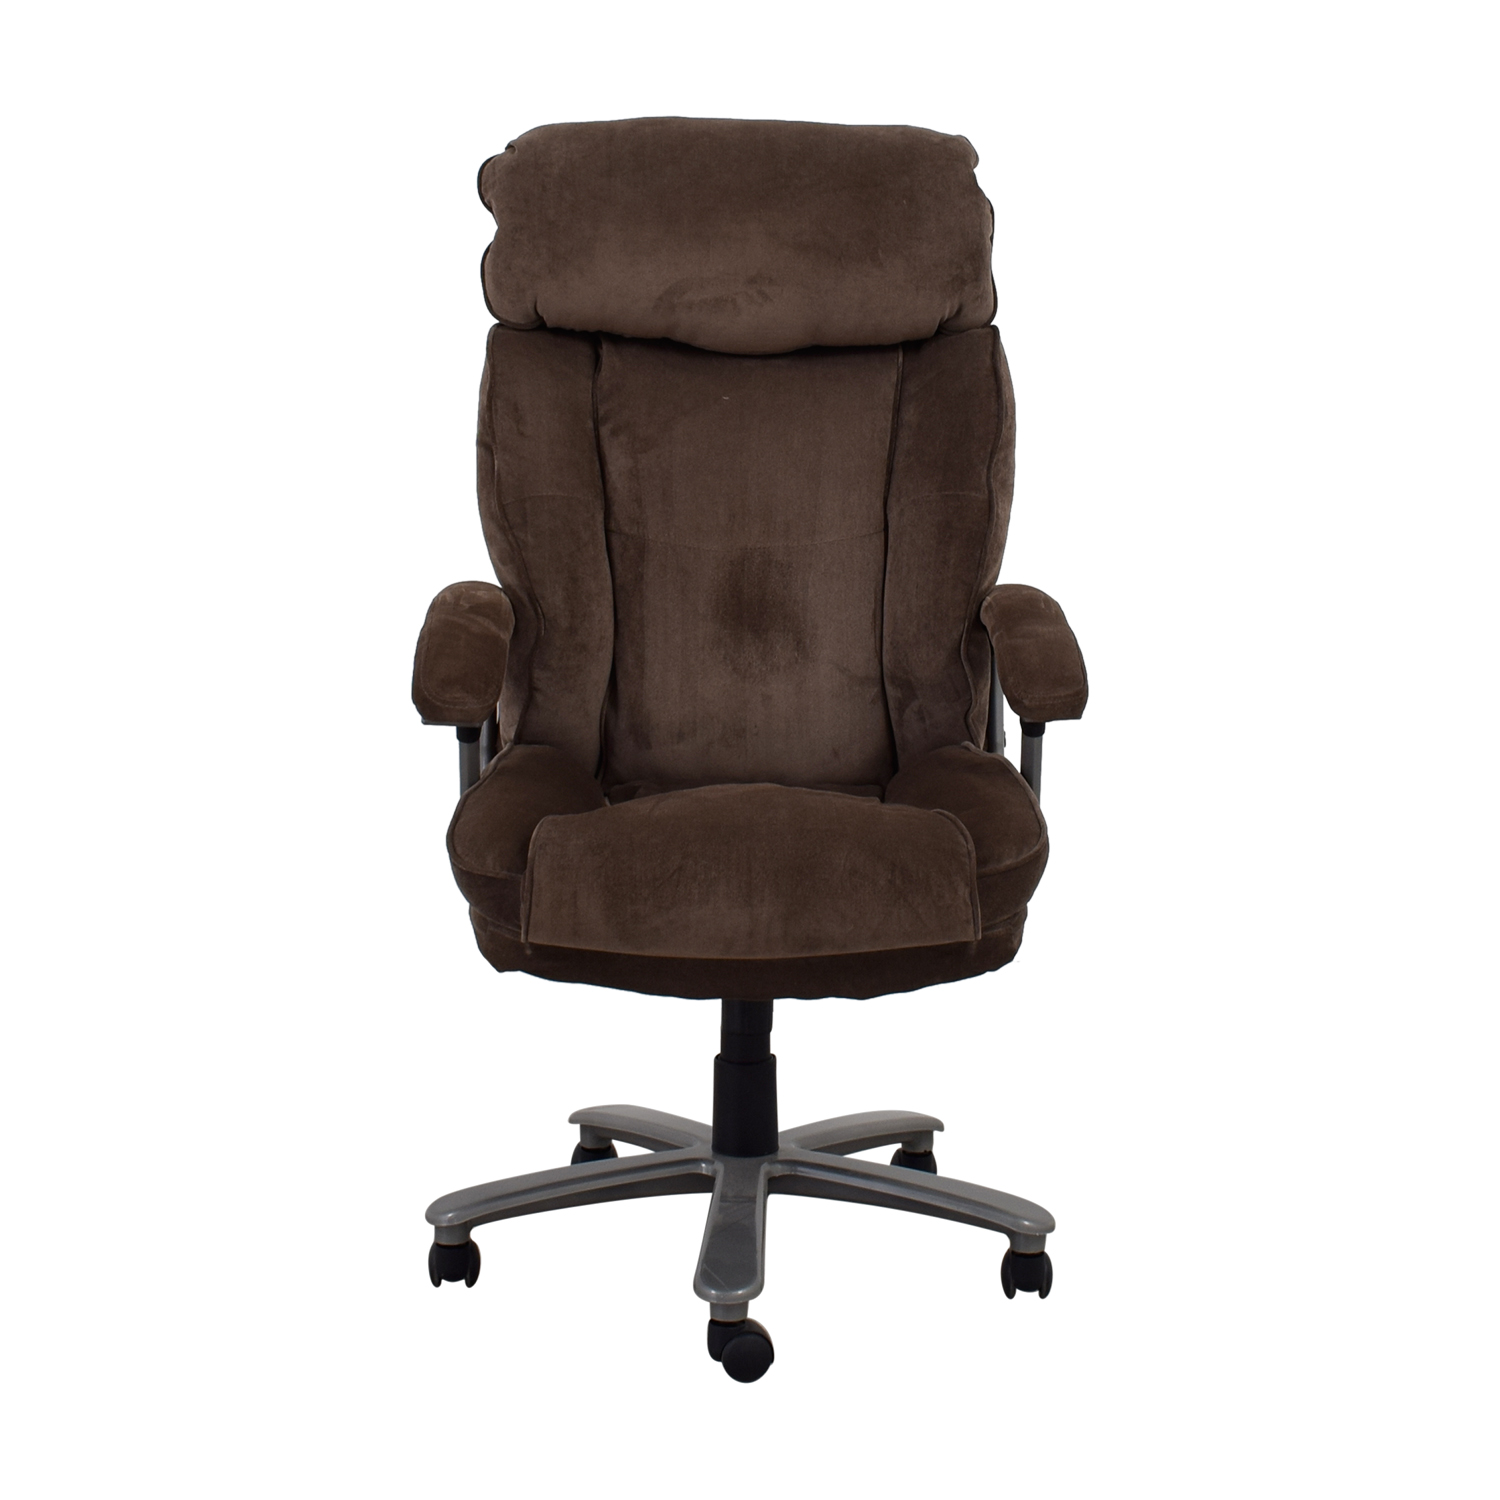 Comfy Office Chairs 78 Off Office Depot Office Depot Grey Office Chair Chairs